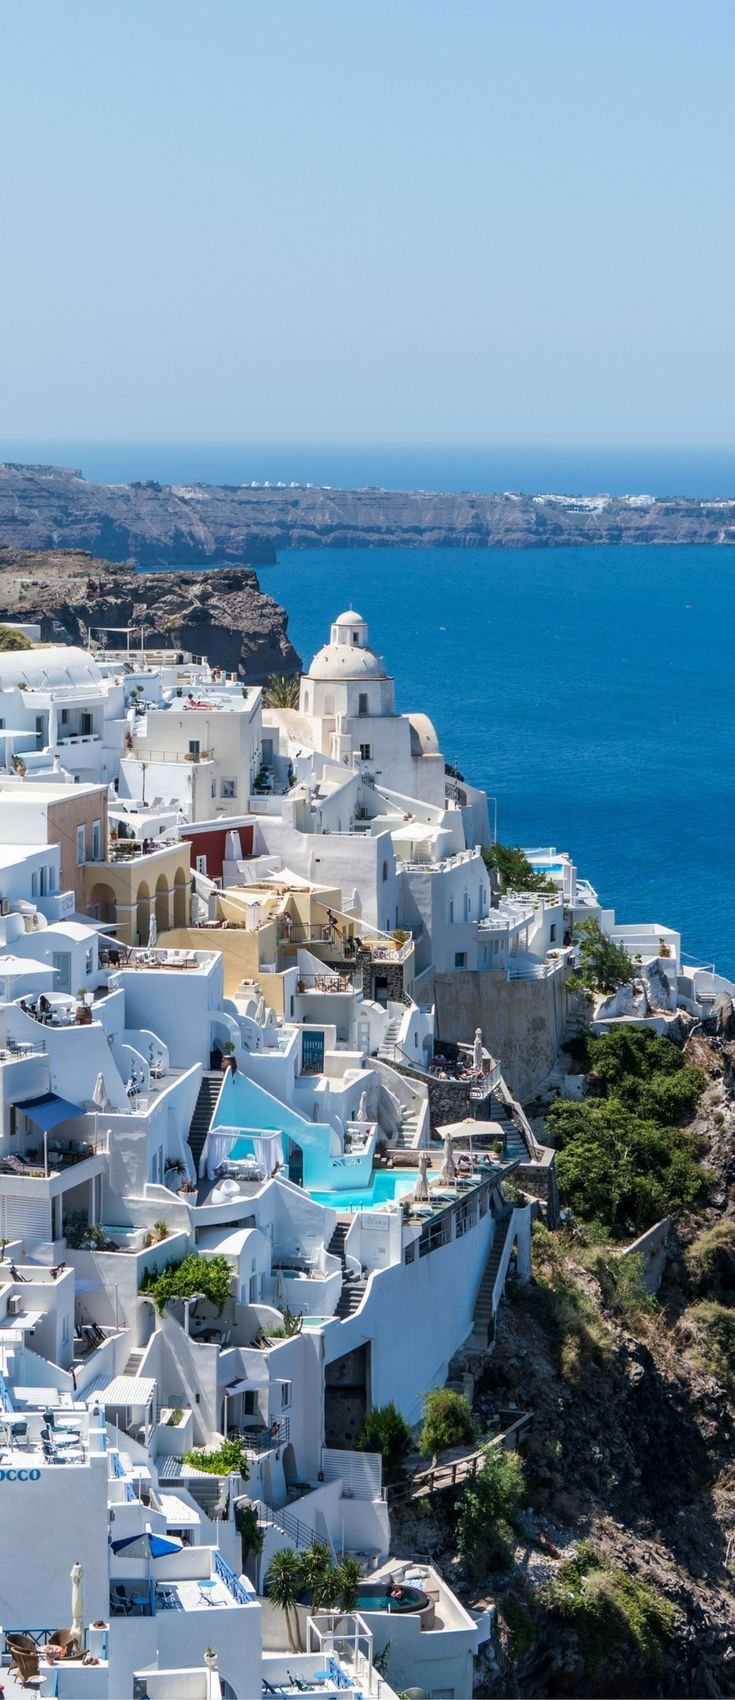 Greece is one of the top 10 most popular places to honeymoon. Find out what the other 9 are! Click through to see them all!